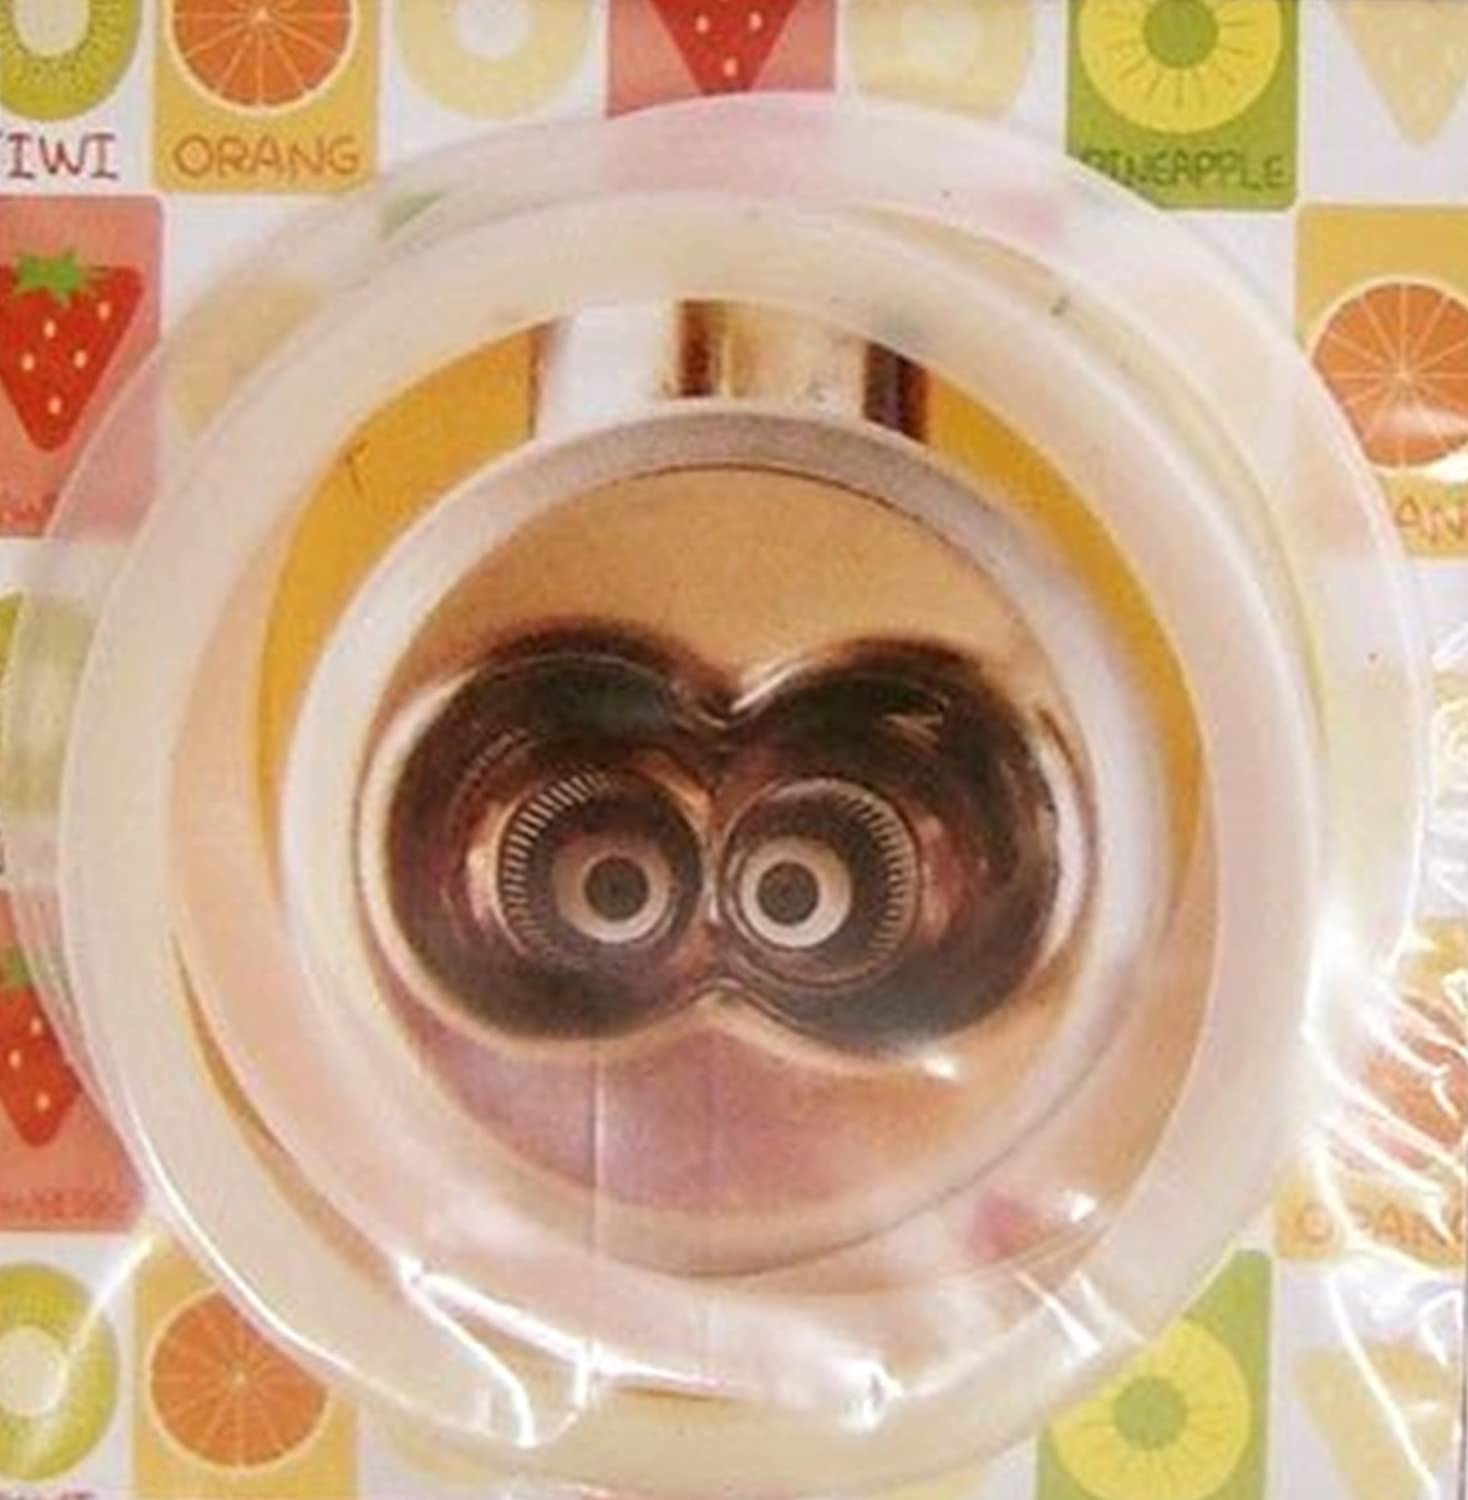 Angel Juicer Accessories, Silicon O-ring for Angel Juicer, 4-piece